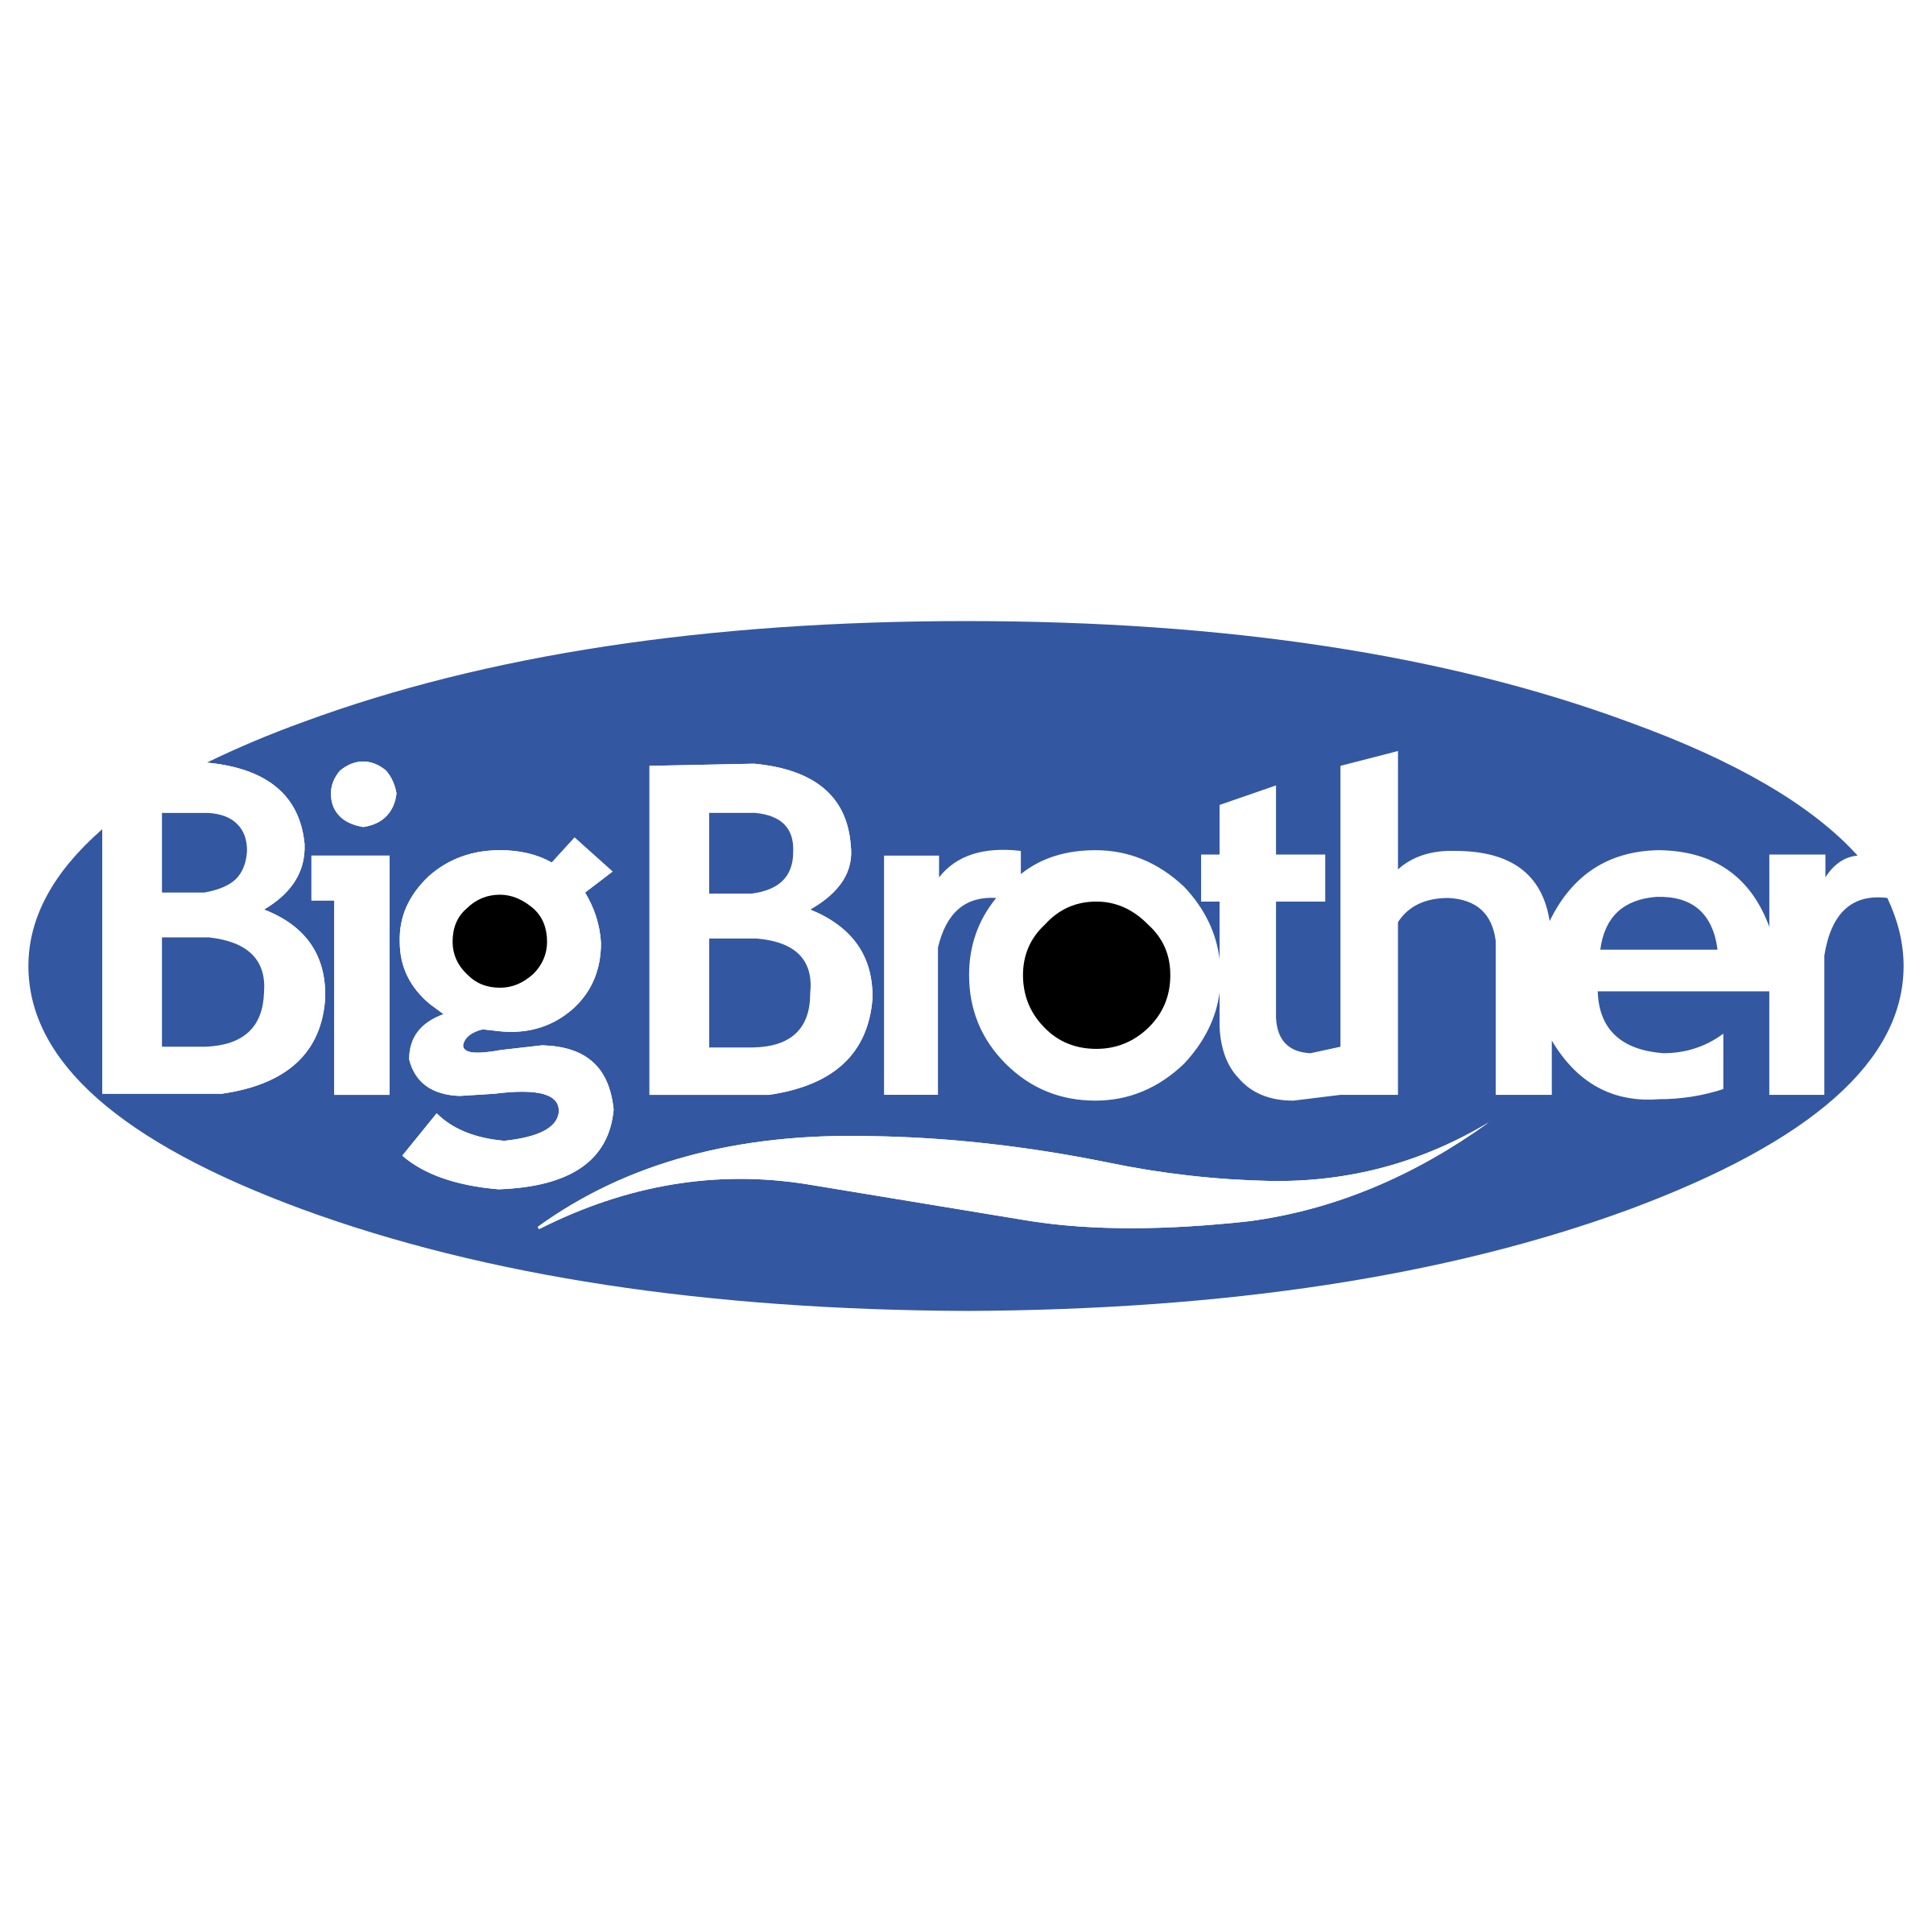 Big Brother Logo PNG Transparent & SVG Vector.